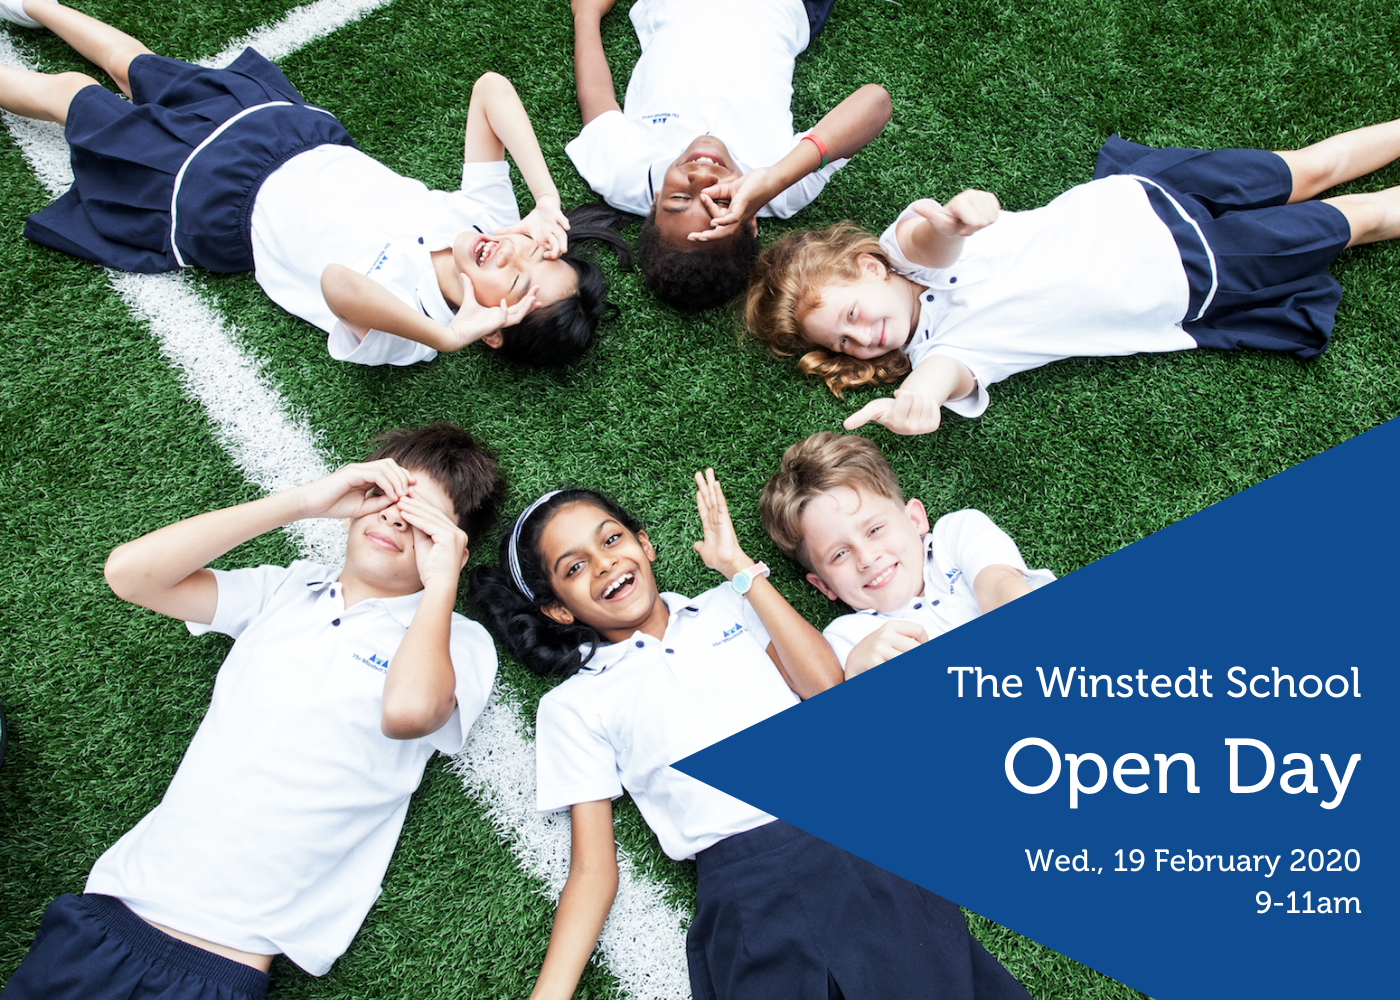 The Winstedt School's Open Day